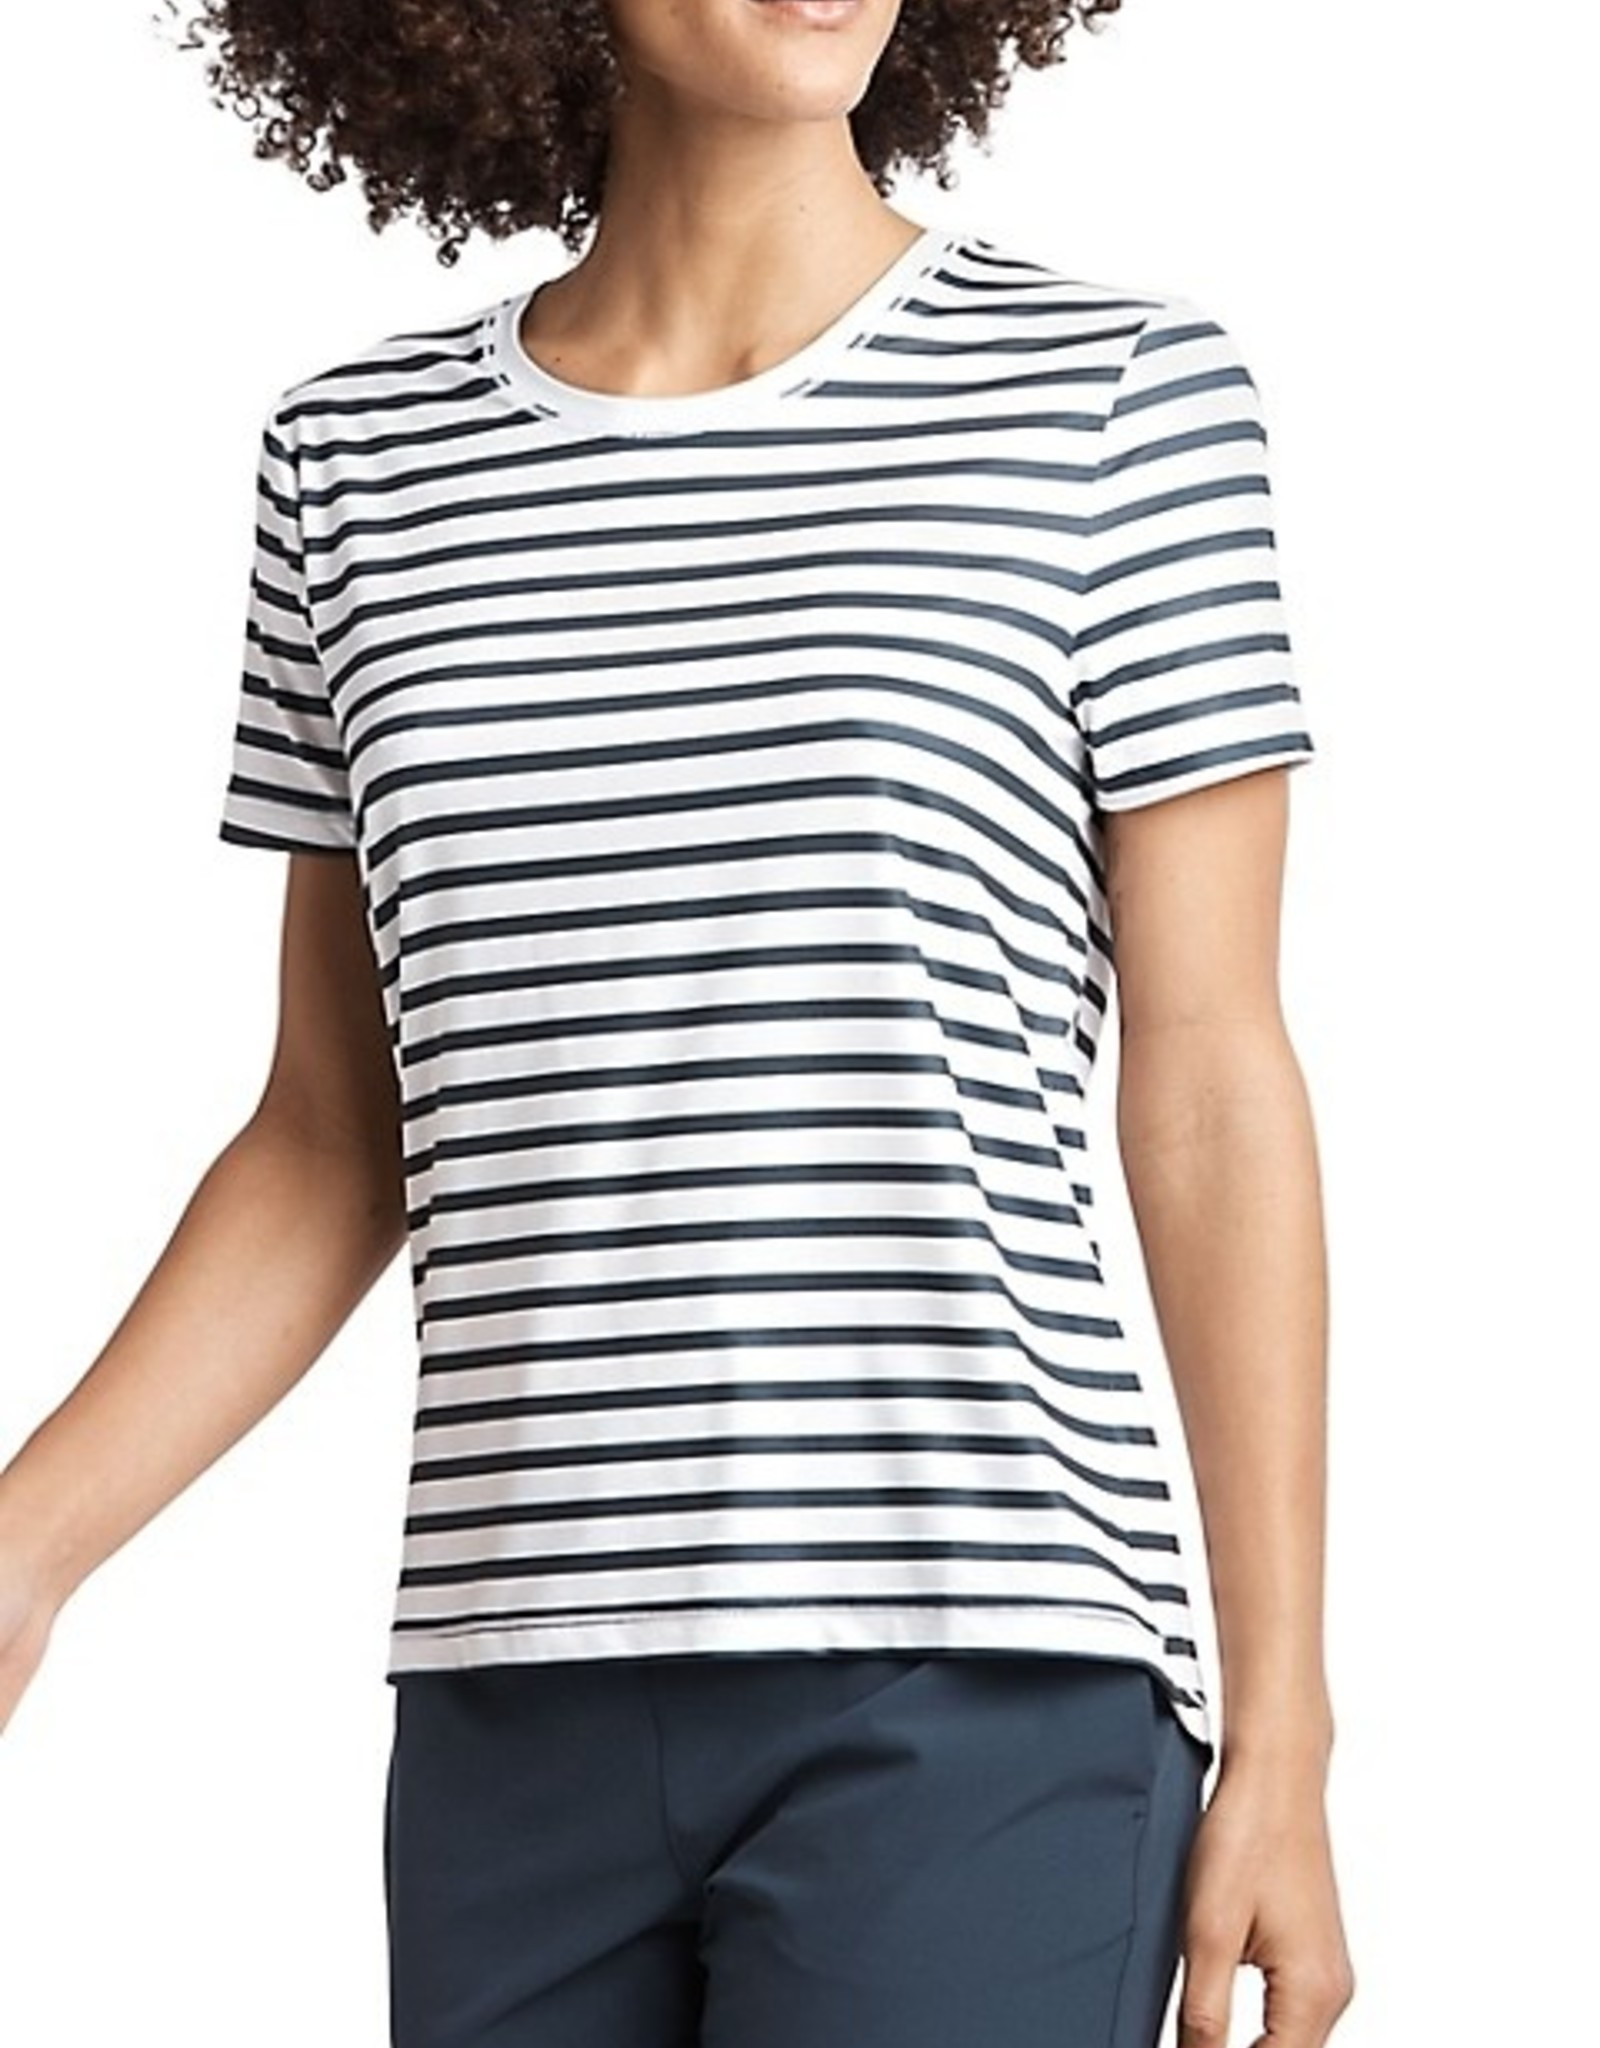 Lole Pace short sleeve